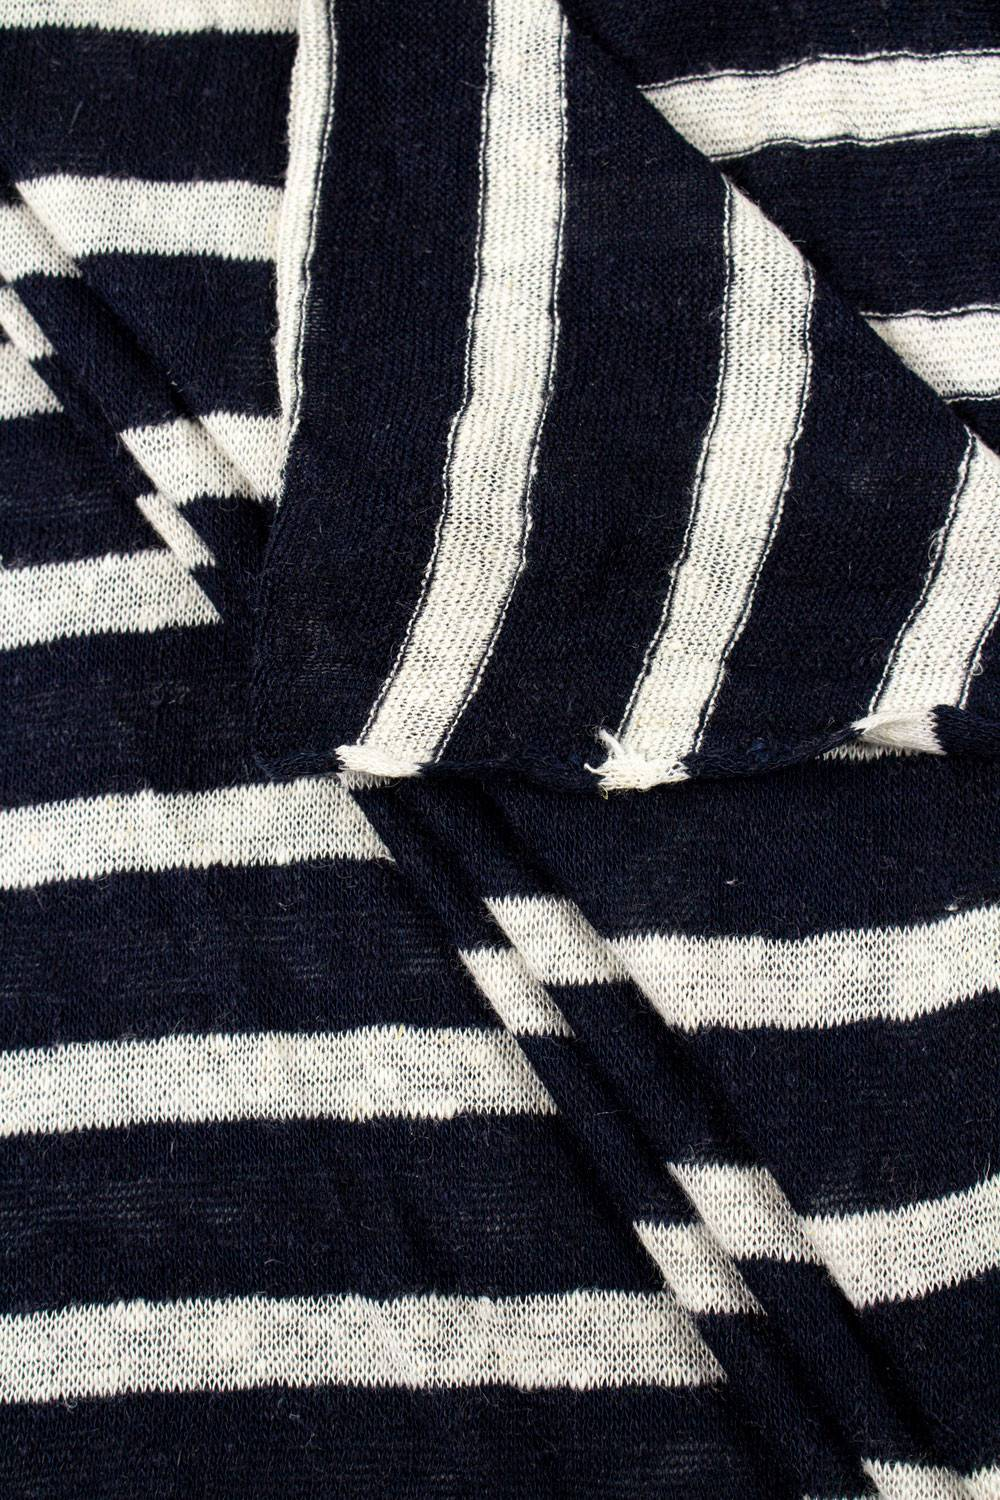 Knit - Sweater Type - Navy Blue & White Stripes - 155 cm - 170 g/m2